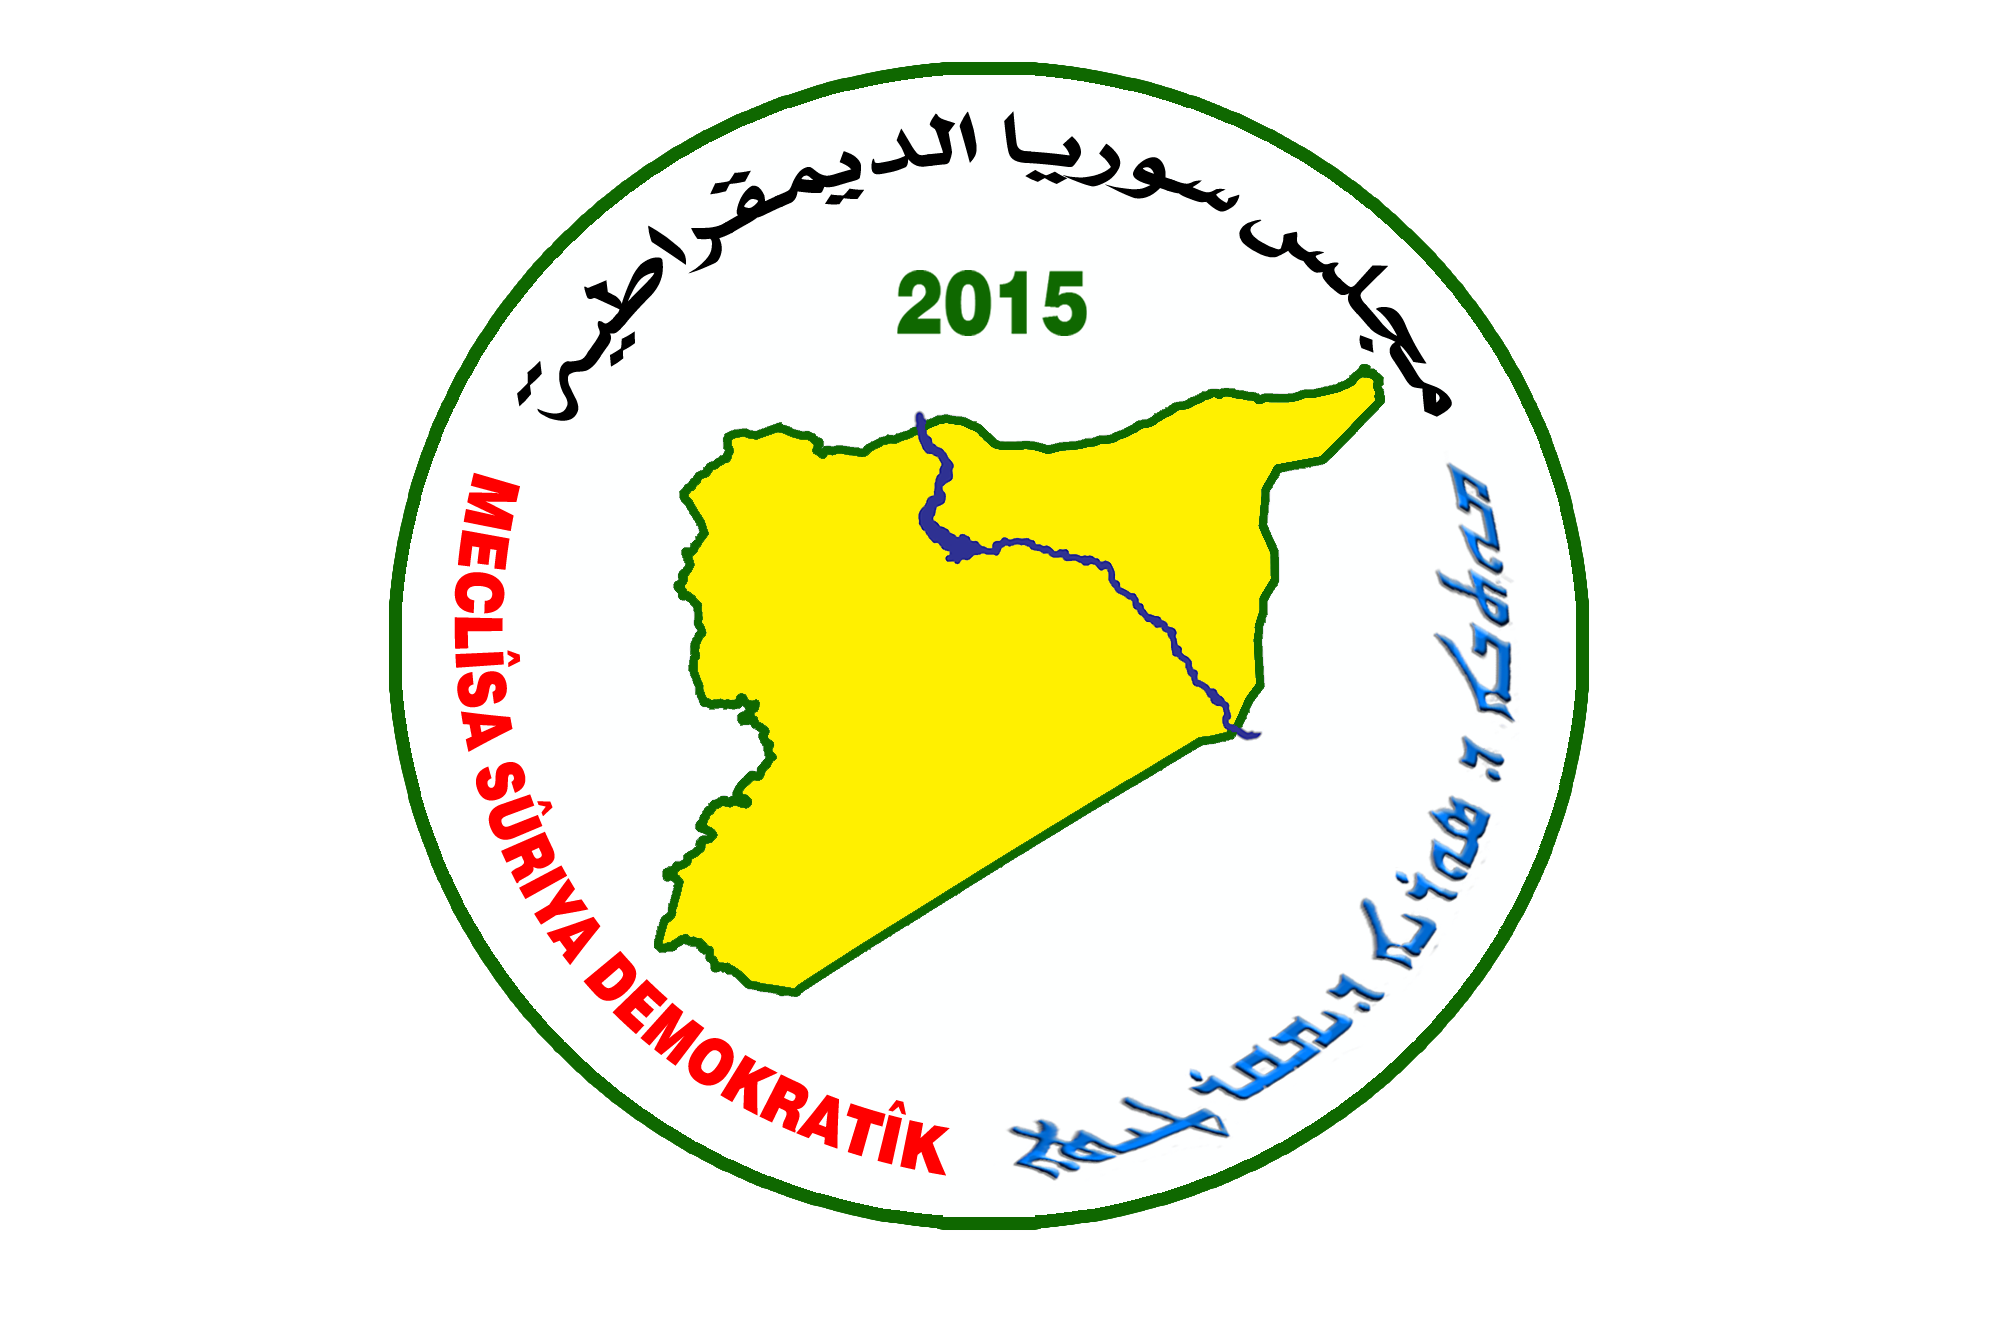 Result Of Damascus Meeting: Committees To Develop Negotiations And End War